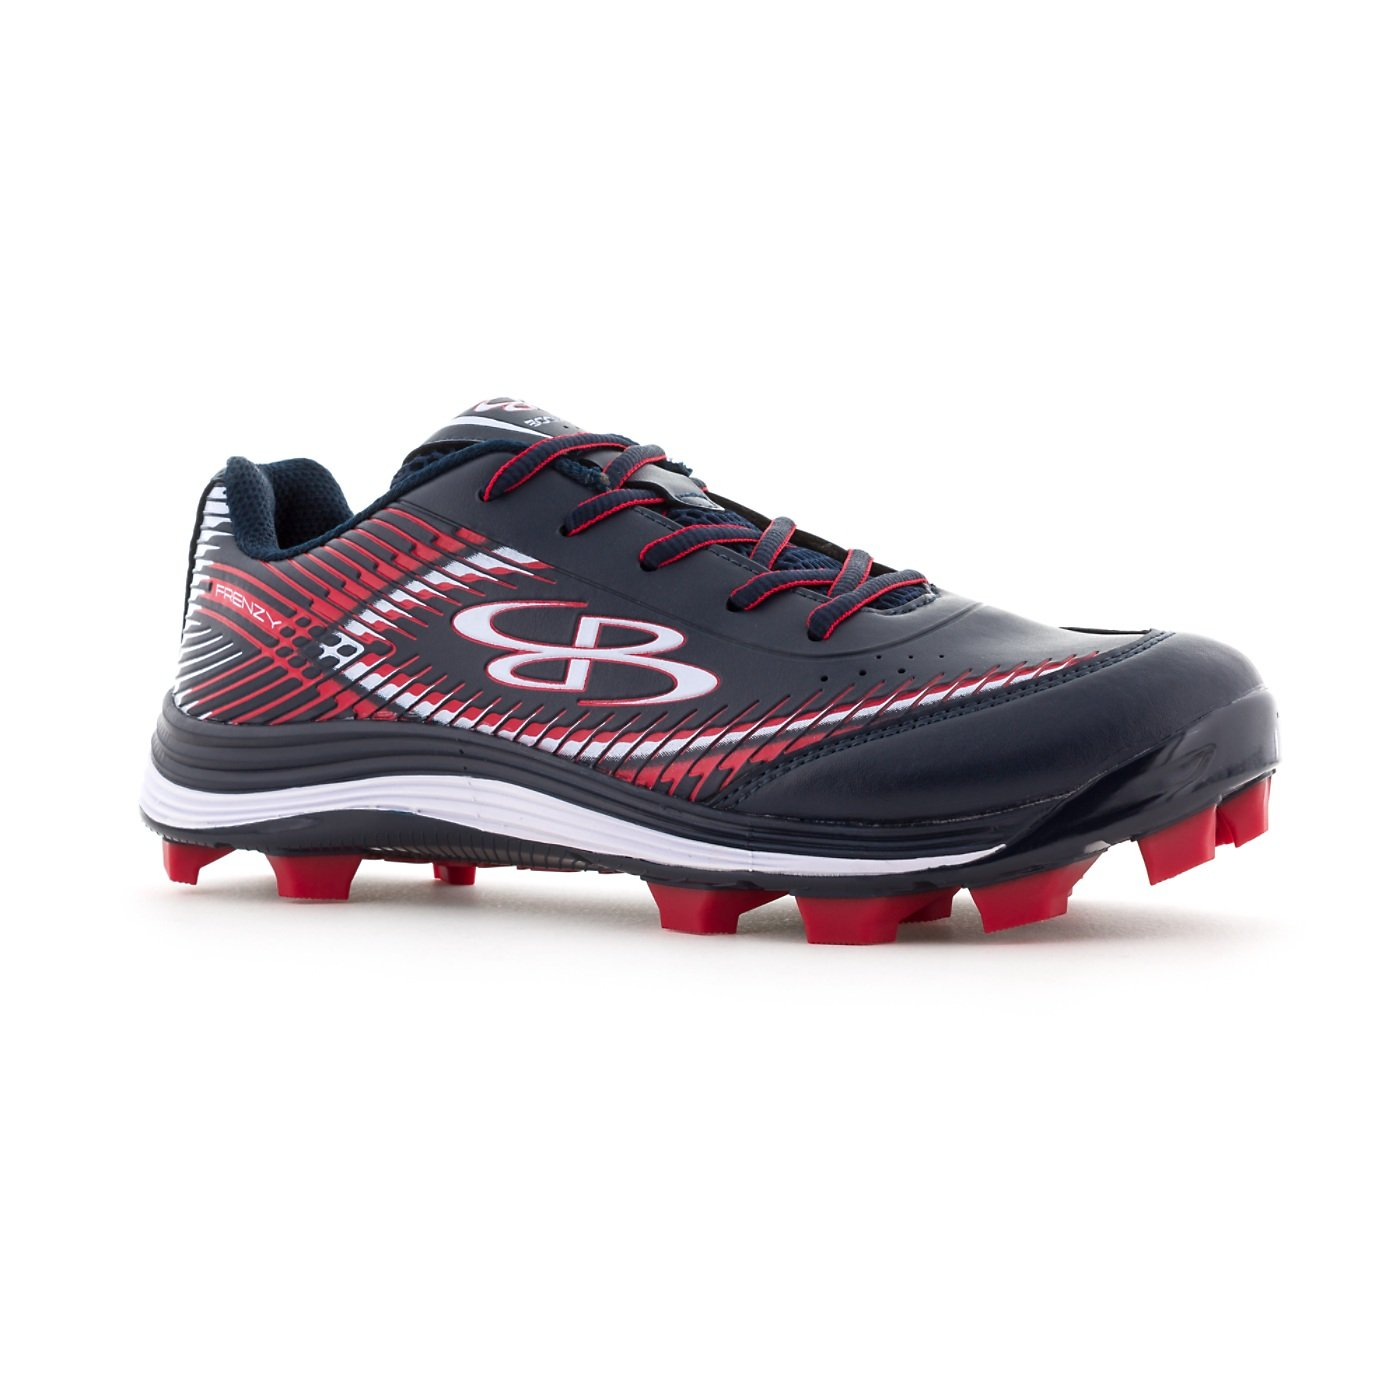 Boombah Women's Frenzy Molded Cleats 13 Color Options